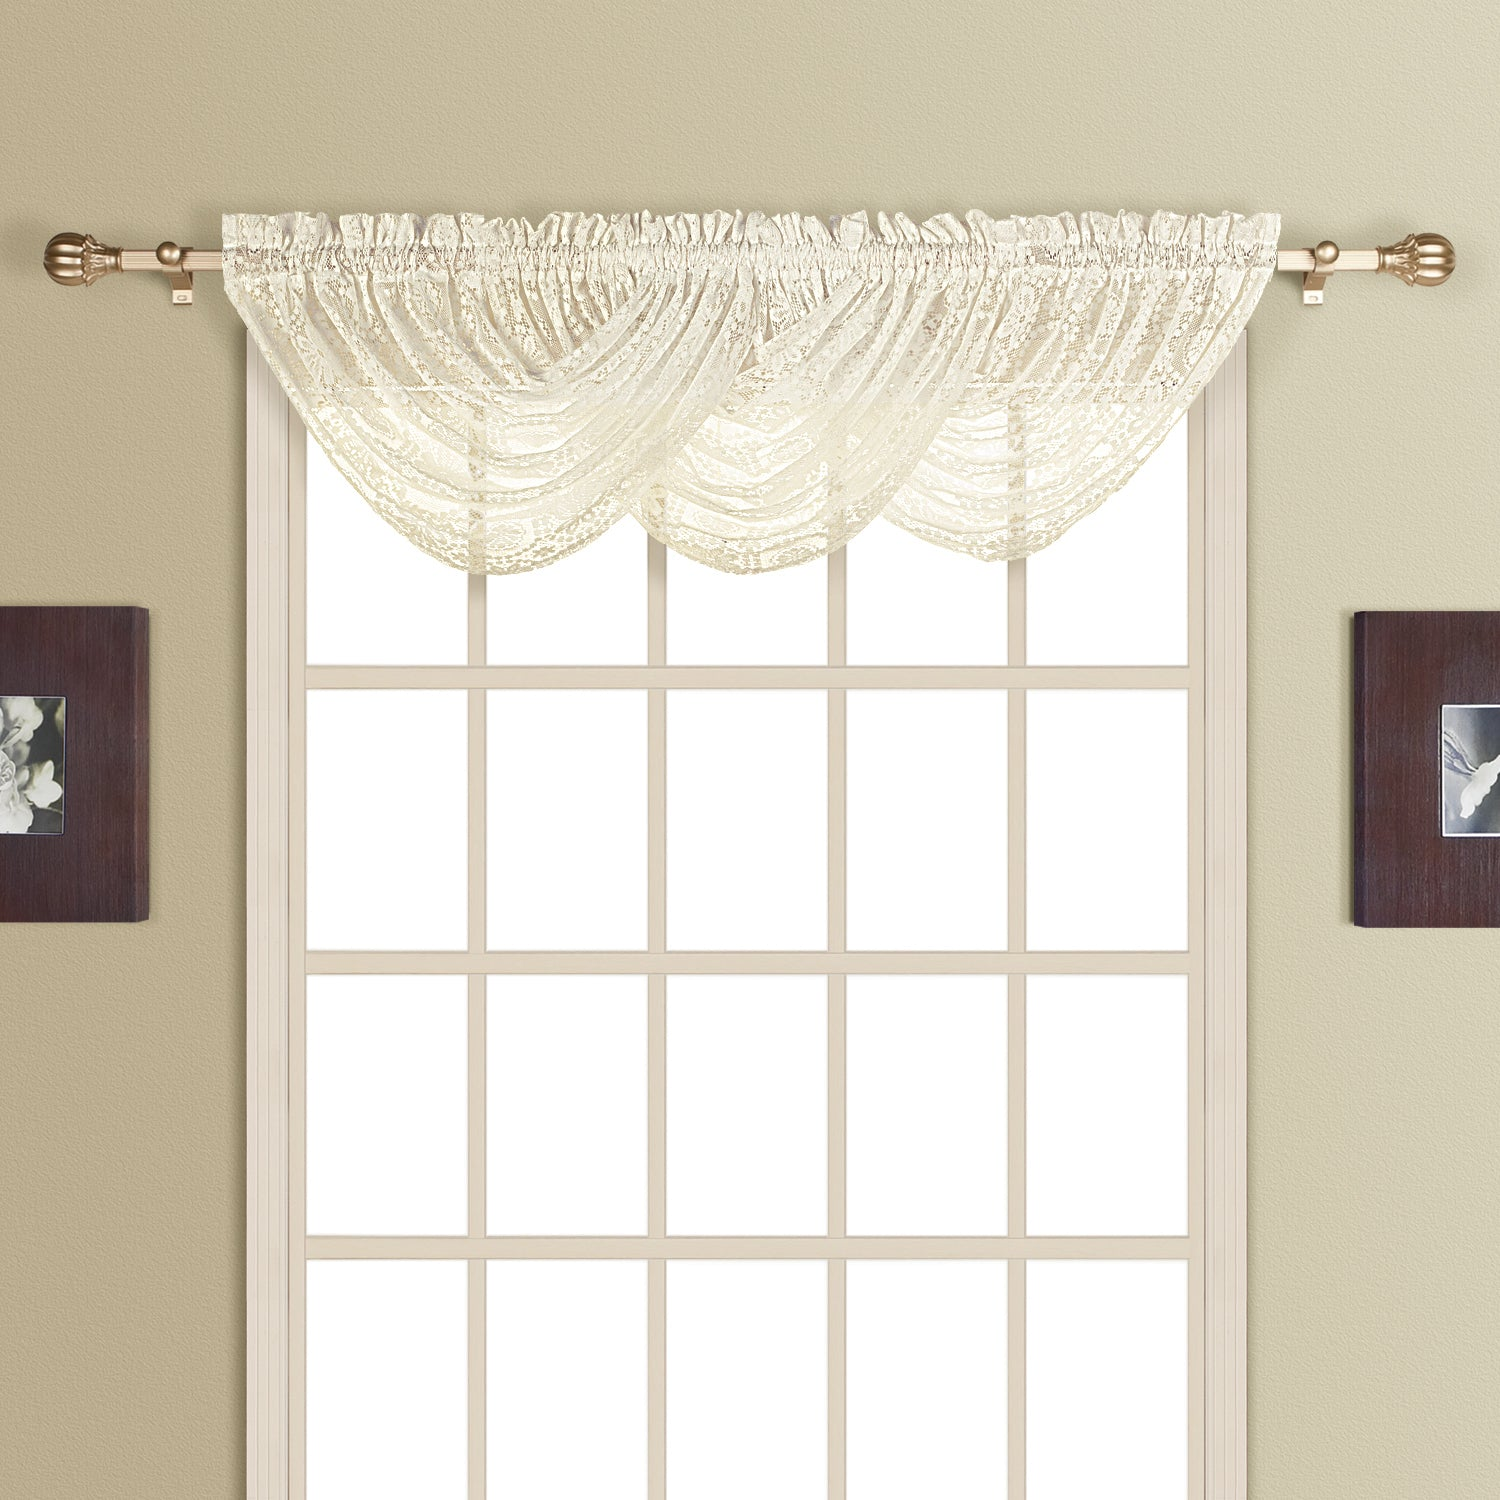 New Rochelle Lace Curtain Collection - Waterfall Valance 044x038 Natural C23235- Marburn Curtains